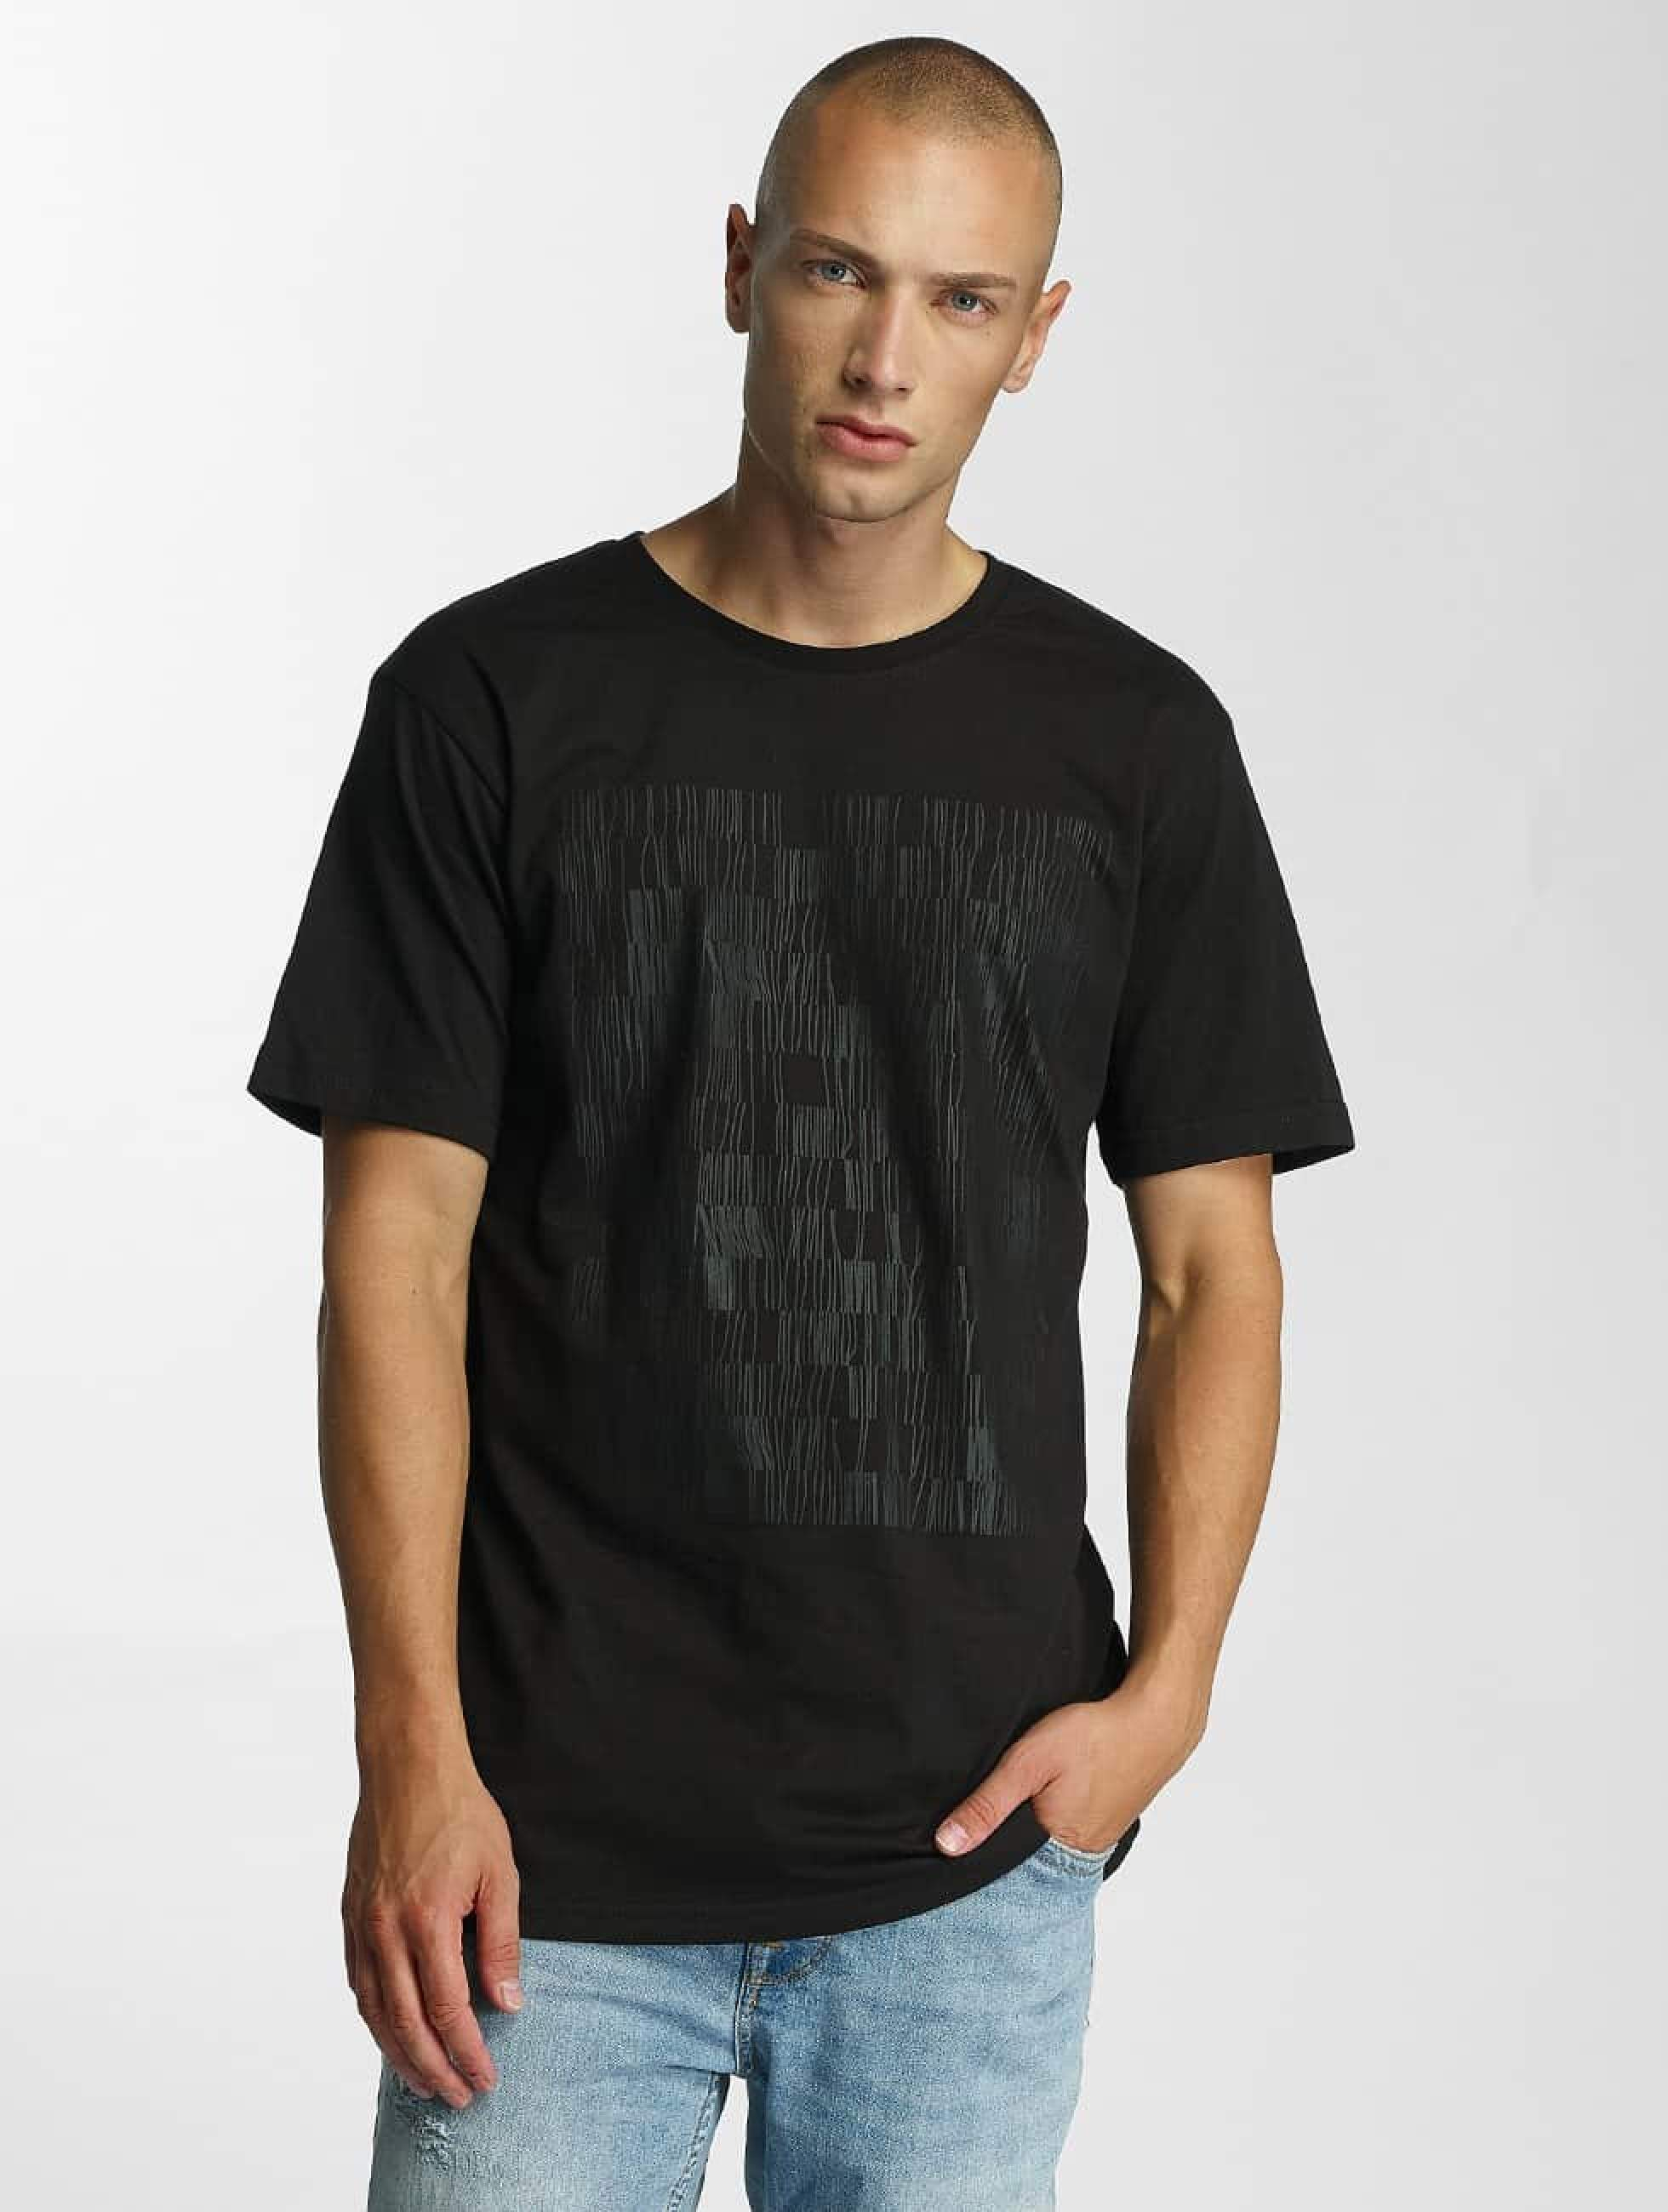 Cyprime / T-Shirt Holmium in black XL